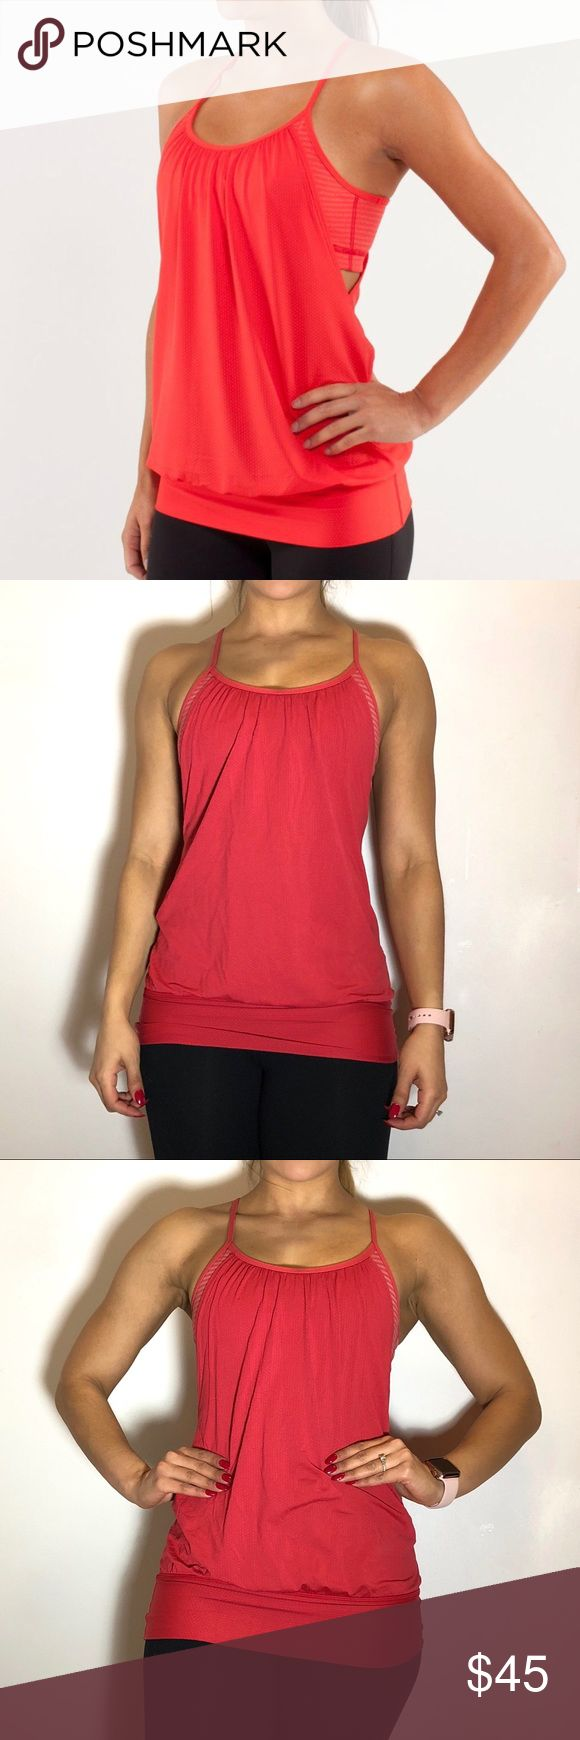 Lululemon No Limits Tank Lululemon No Limits Tank in Love Red. -Size 4. -Color is more of a burnt orange. -Fabric: Luon, circle mesh. -Great condition. Lululemon logo is cracking a bit, some yellowing on bra band.  NO Trades. Please make all offers through offer button. lululemon athletica Tops Tank Tops